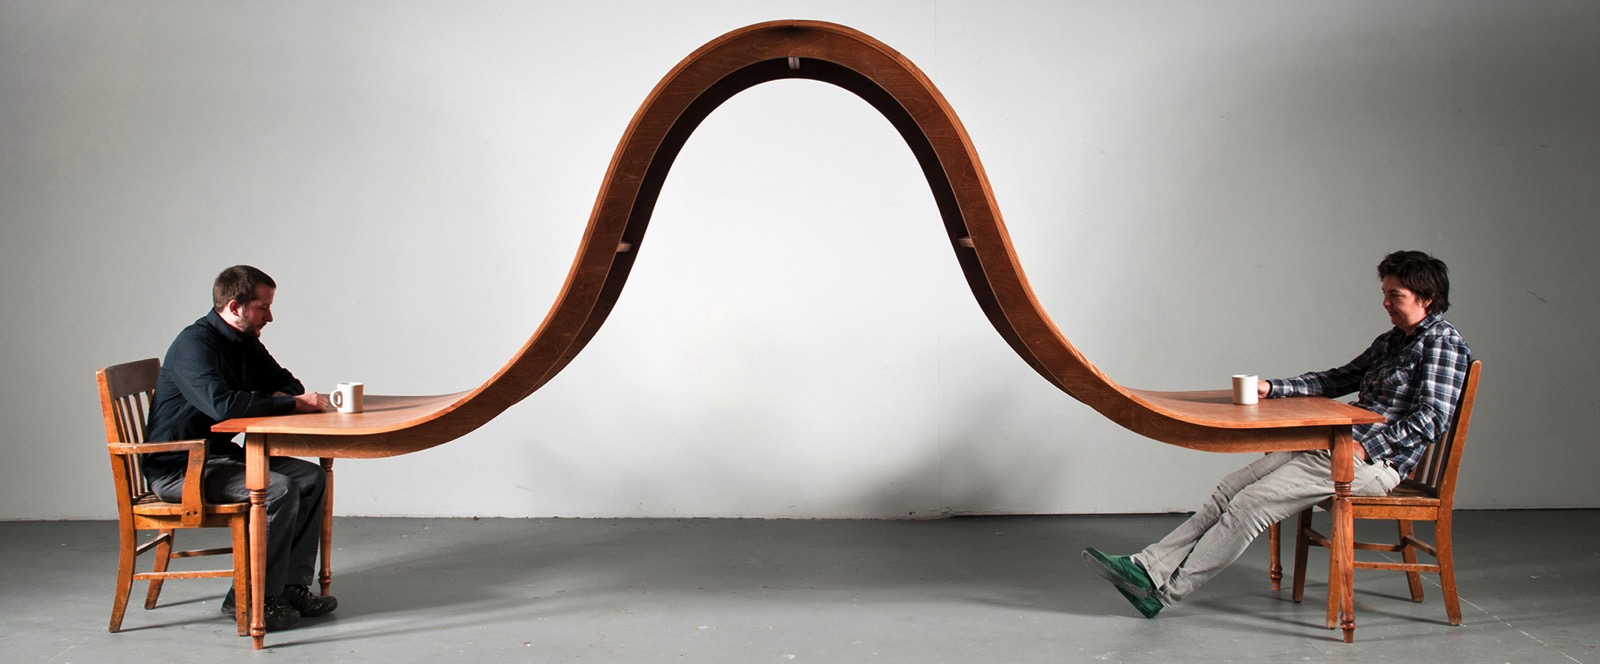 Michael beitz sculptural work designboom 1800